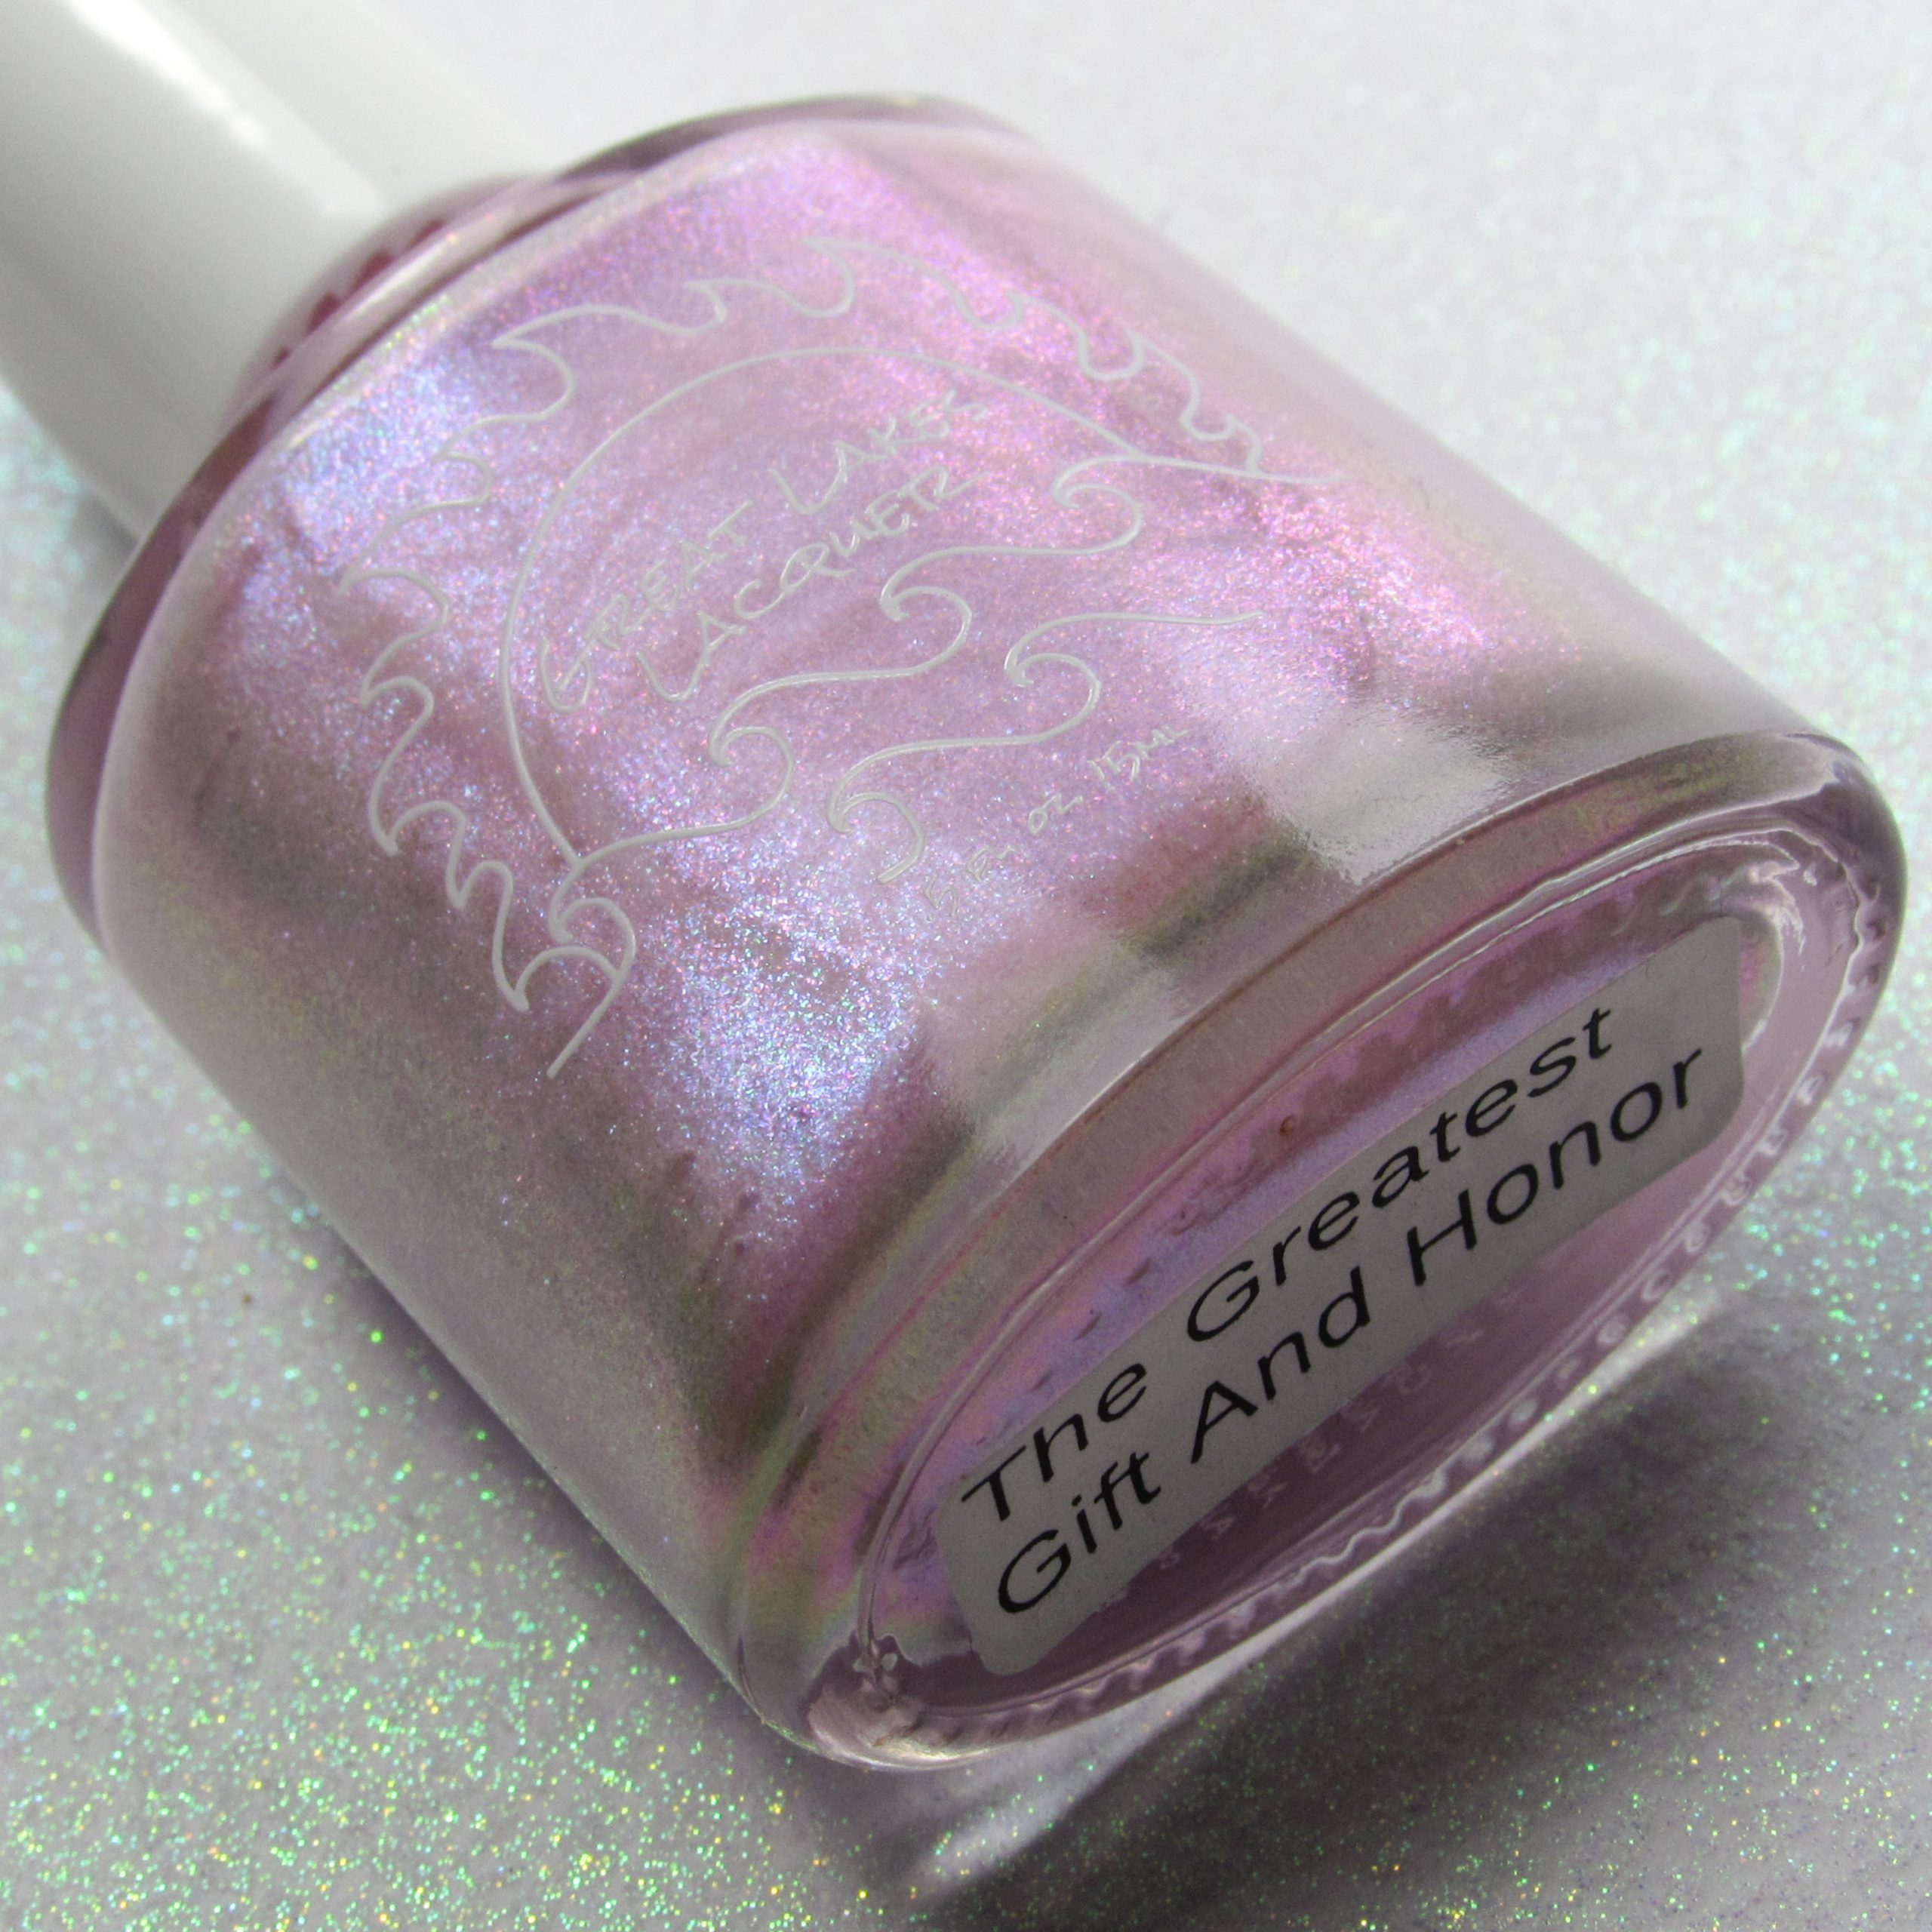 The Greatest Gift And Honor - Great Lakes Lacquer - Polish Pickup Feb 2020